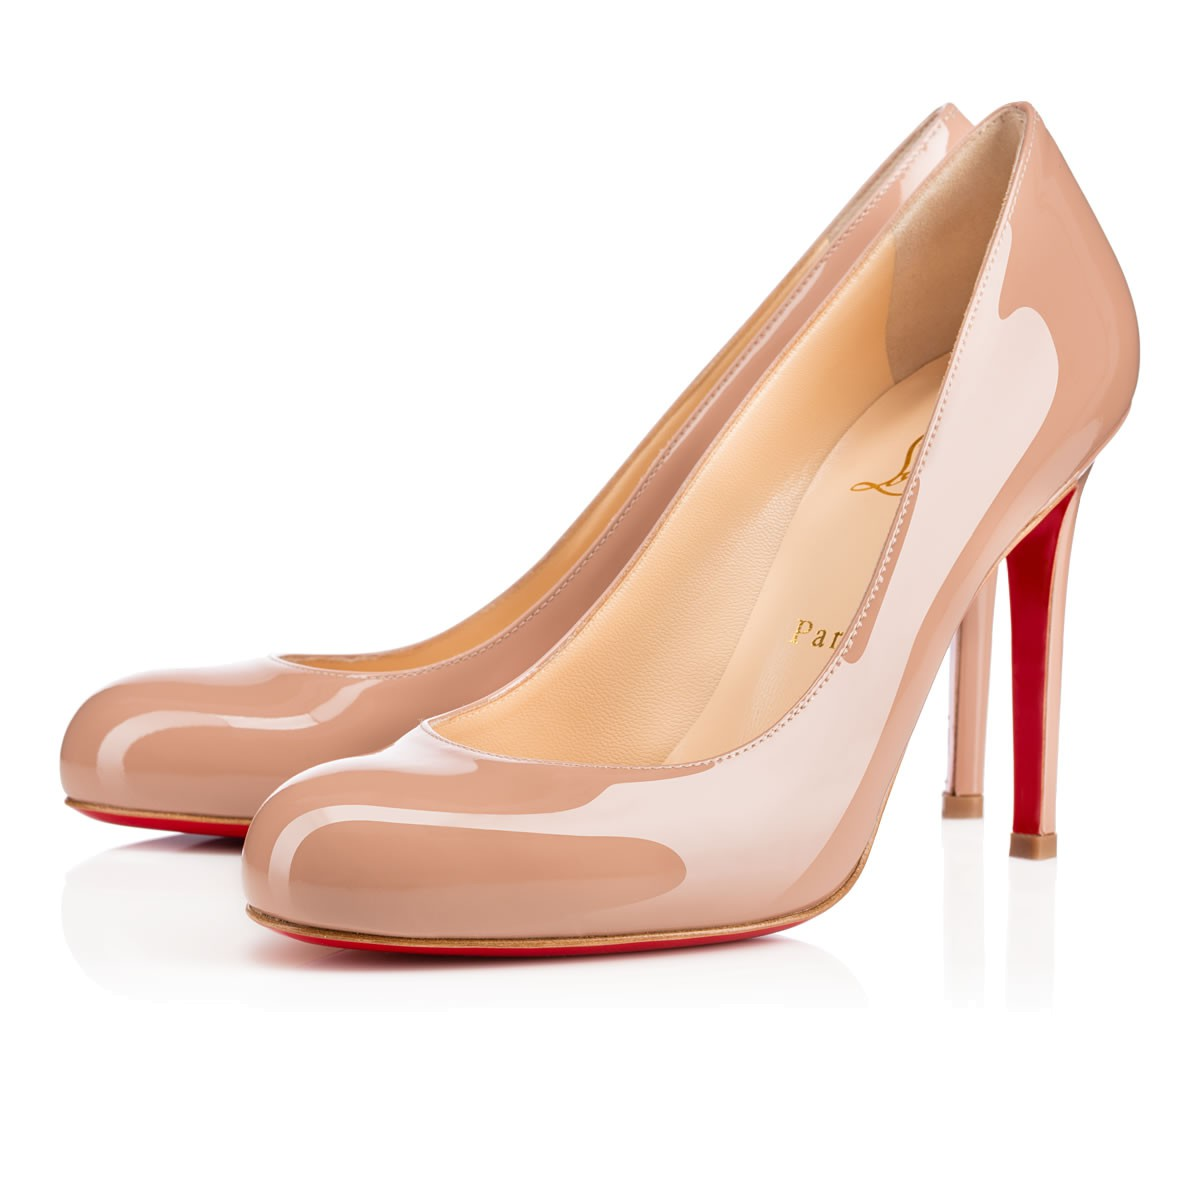 Simple Pump 100 Nude 6248 Patent Leather - Women Shoes - Christian ...